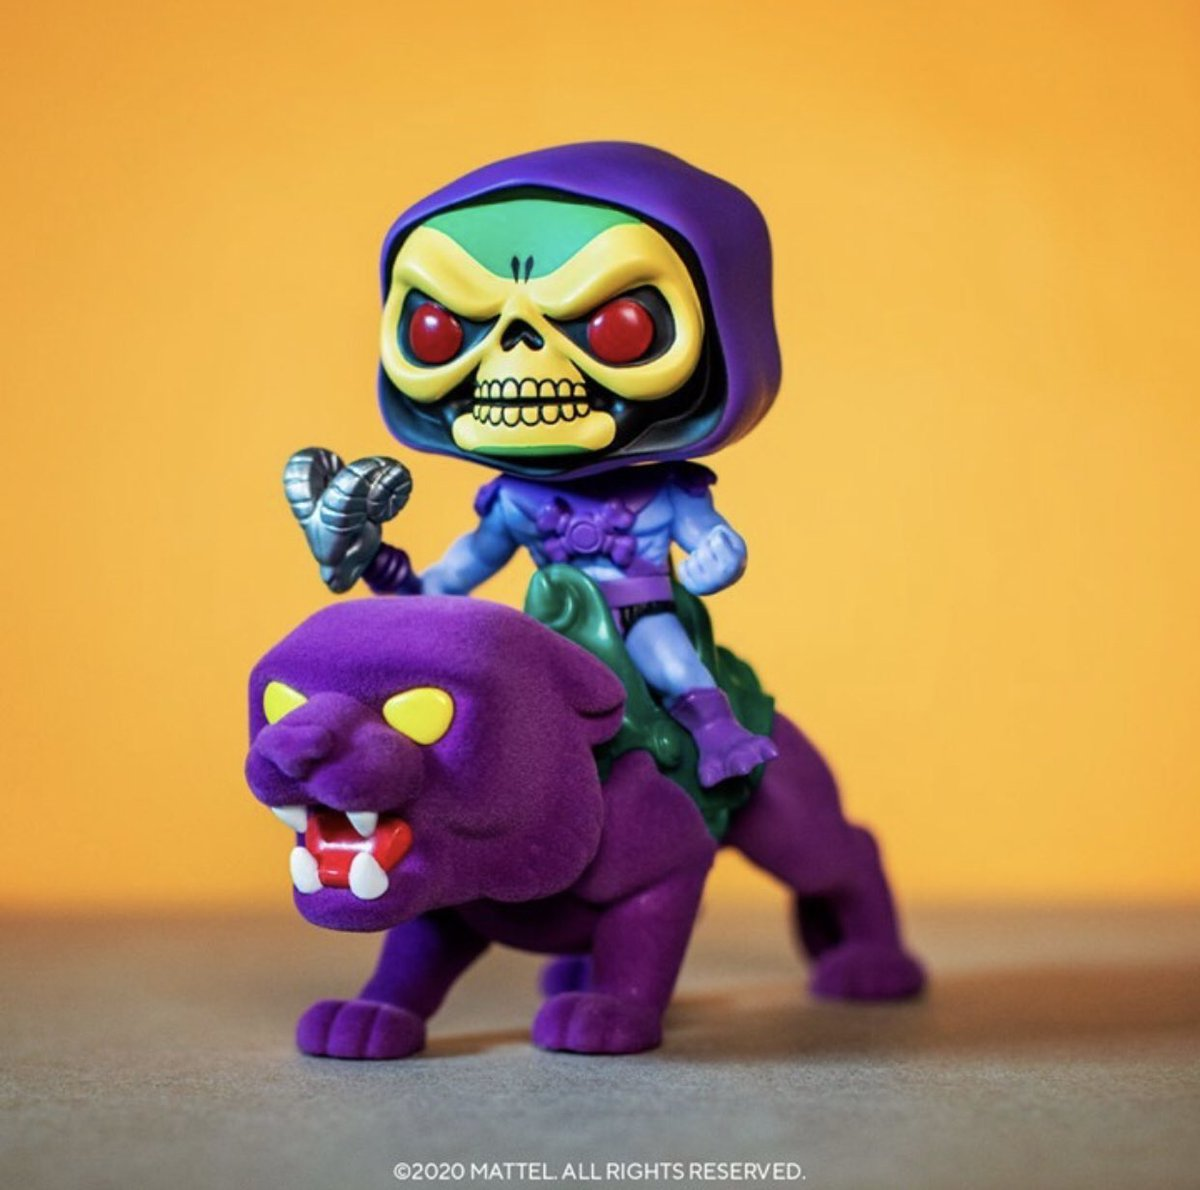 Available now on @FunkoEurope Shop  ✅ Order Here ⬇️   #funko #funkoshop #funkoeuropeshop #popvinyl #funkopopvinyl #mastersoftheuniverse #heman #skeletor #funkonews